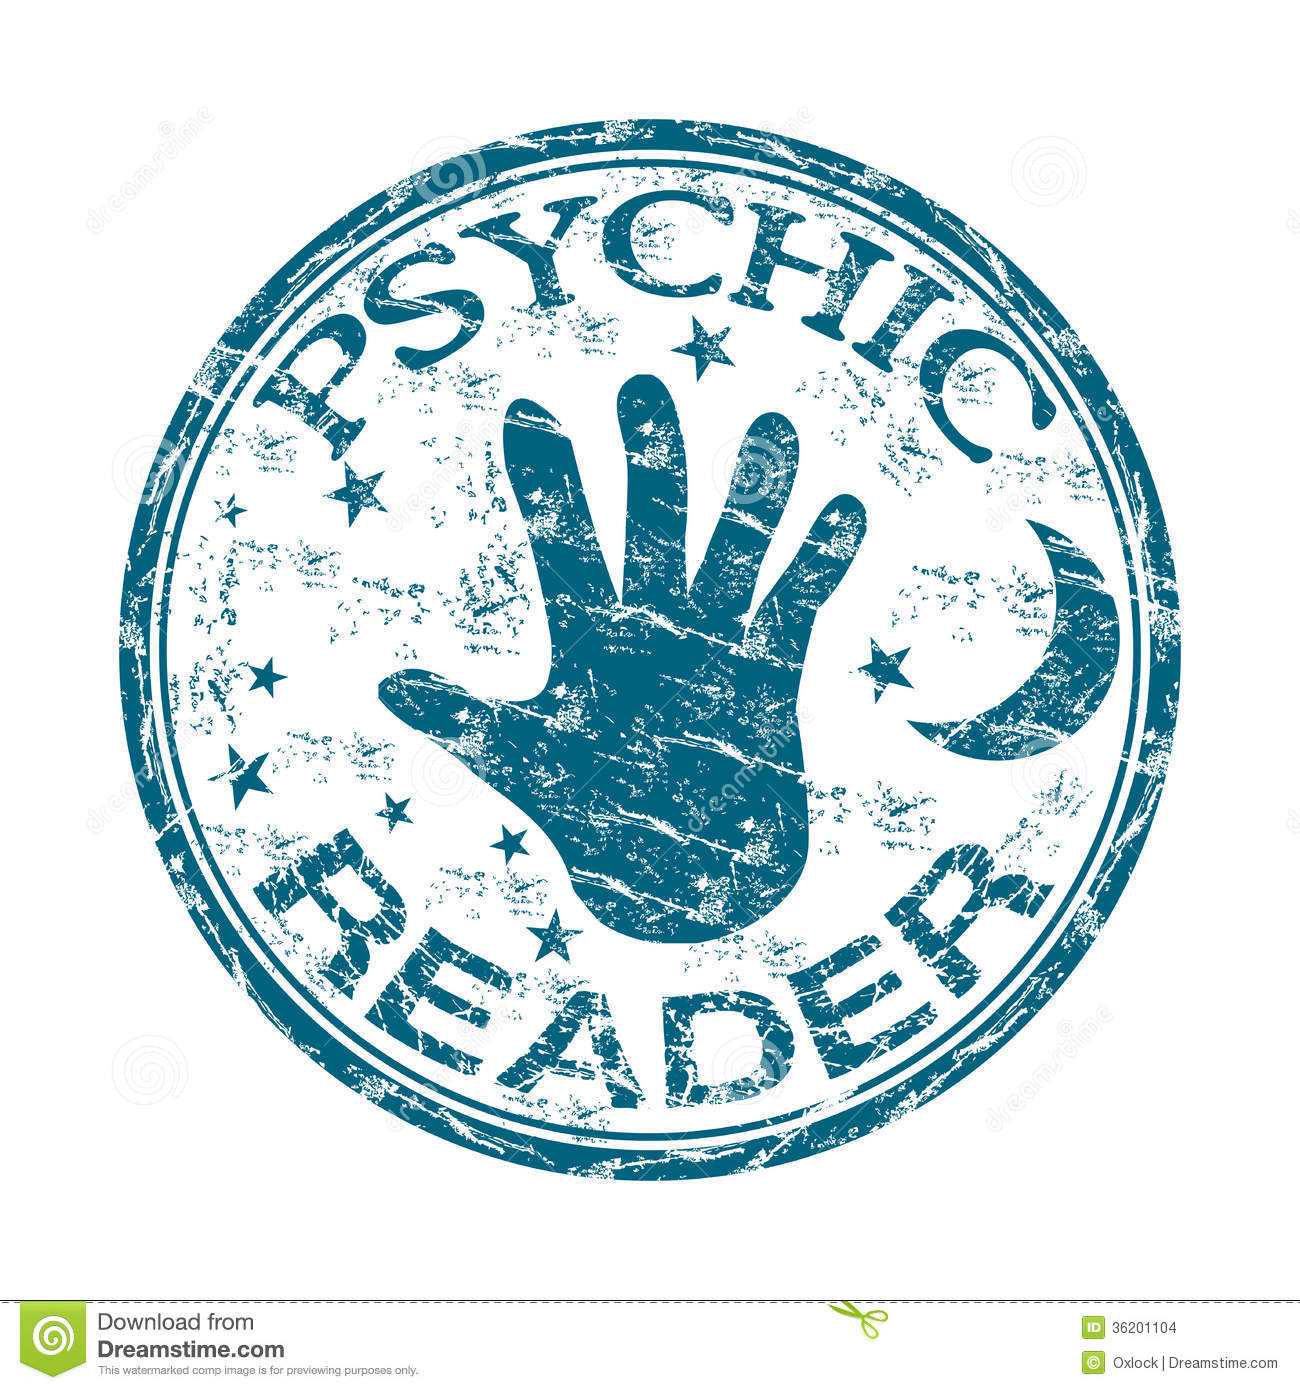 psychic-reader-rubber-stamp-blue-grunge-